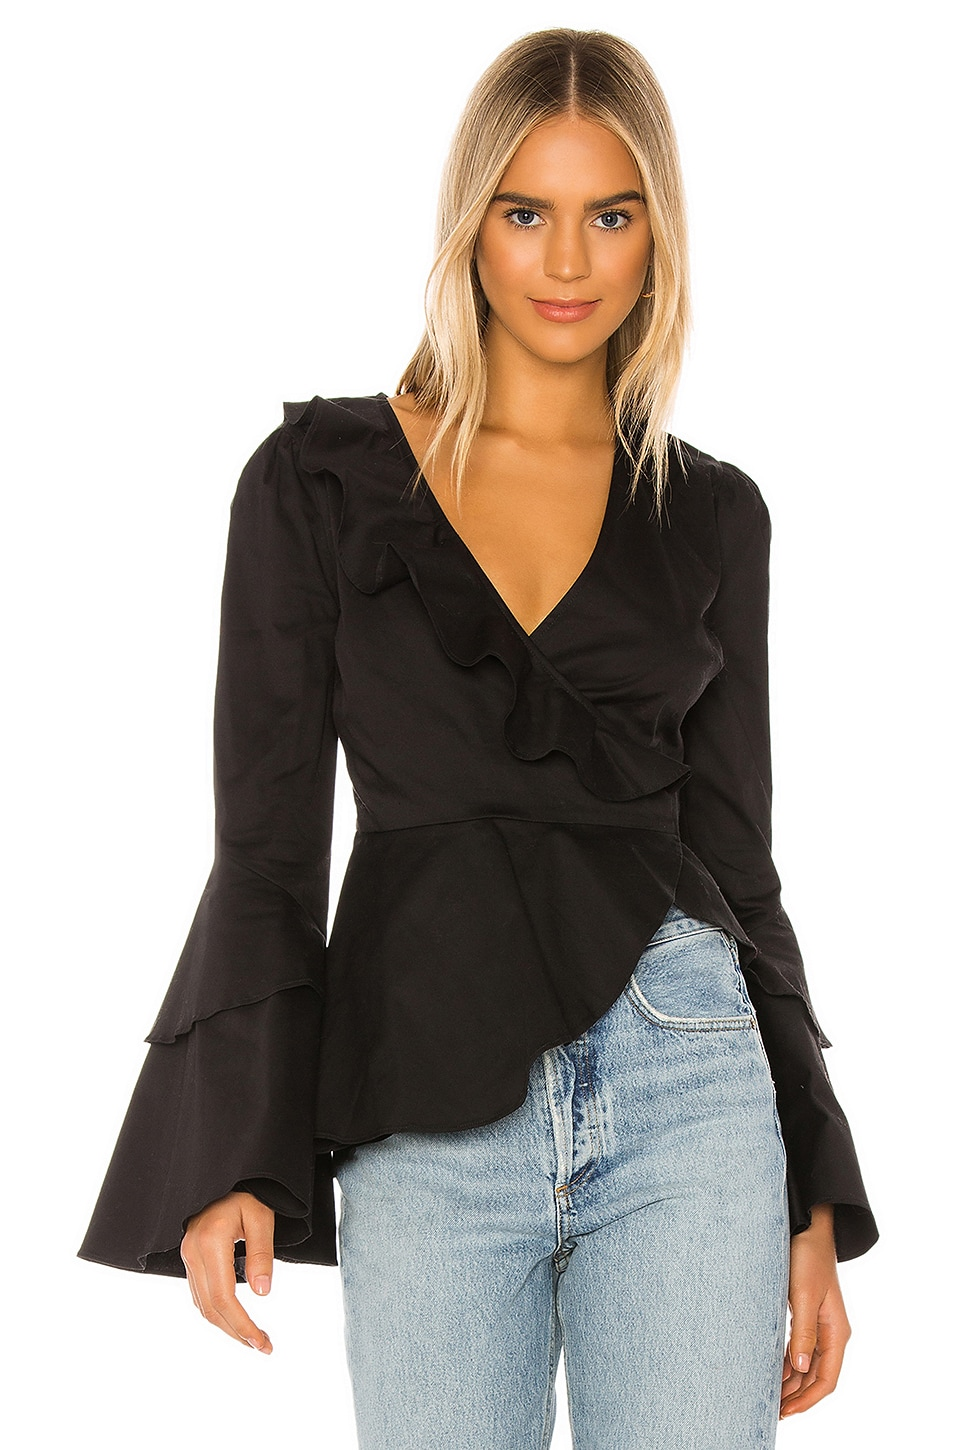 MAJORELLE Everleigh Top in Black